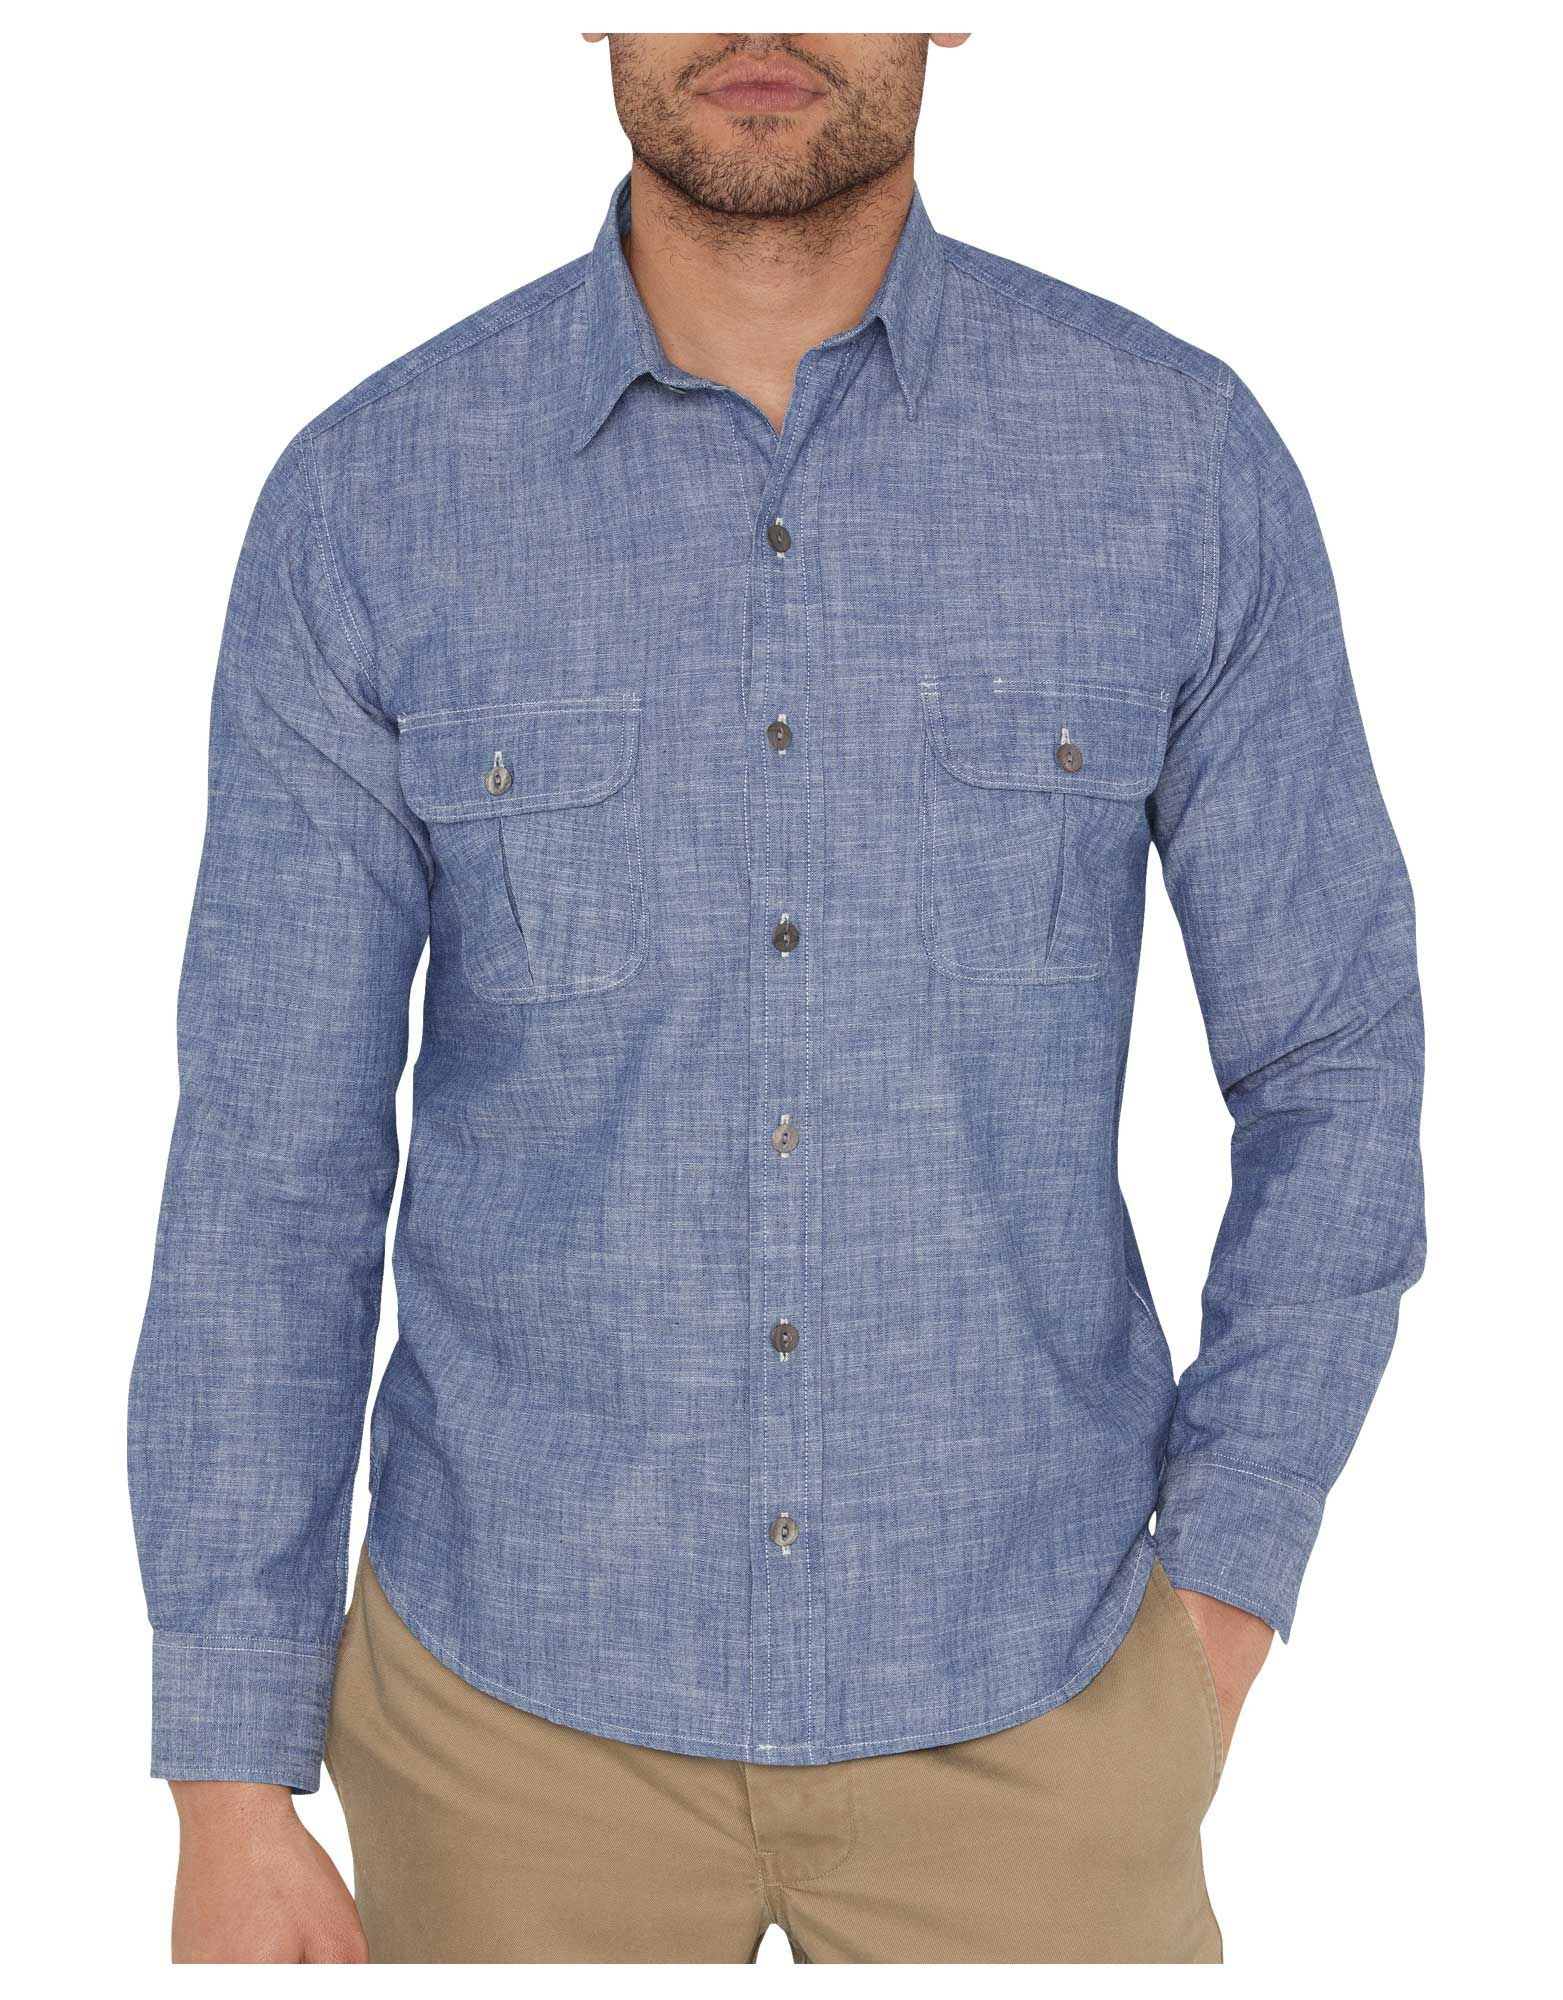 Dickies 1922 Chambray Shirt | Mens Shirts | Dickies